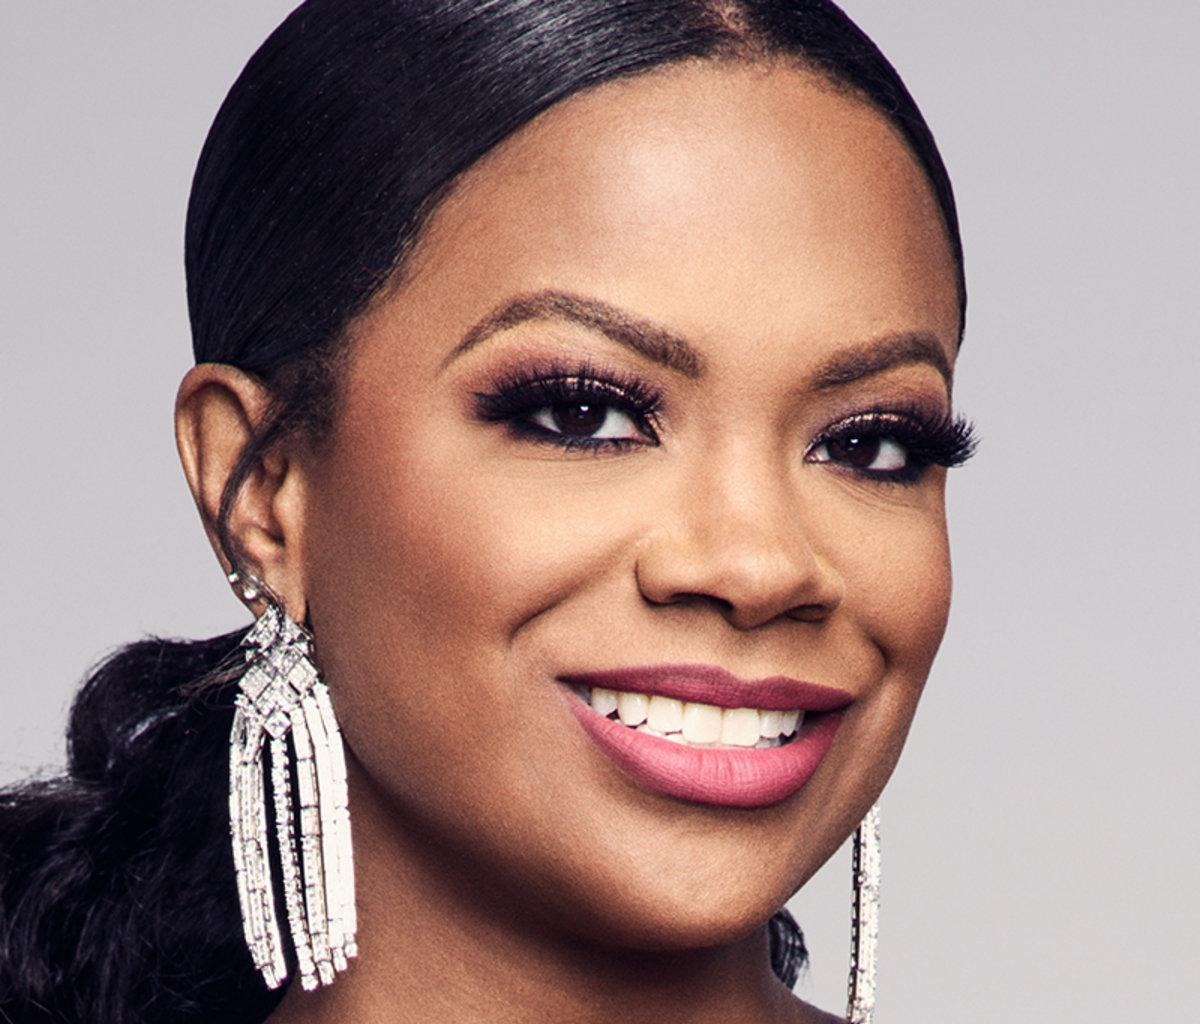 Kandi Burruss Breaks The Internet With Her 45th Birthday Photo And Clip